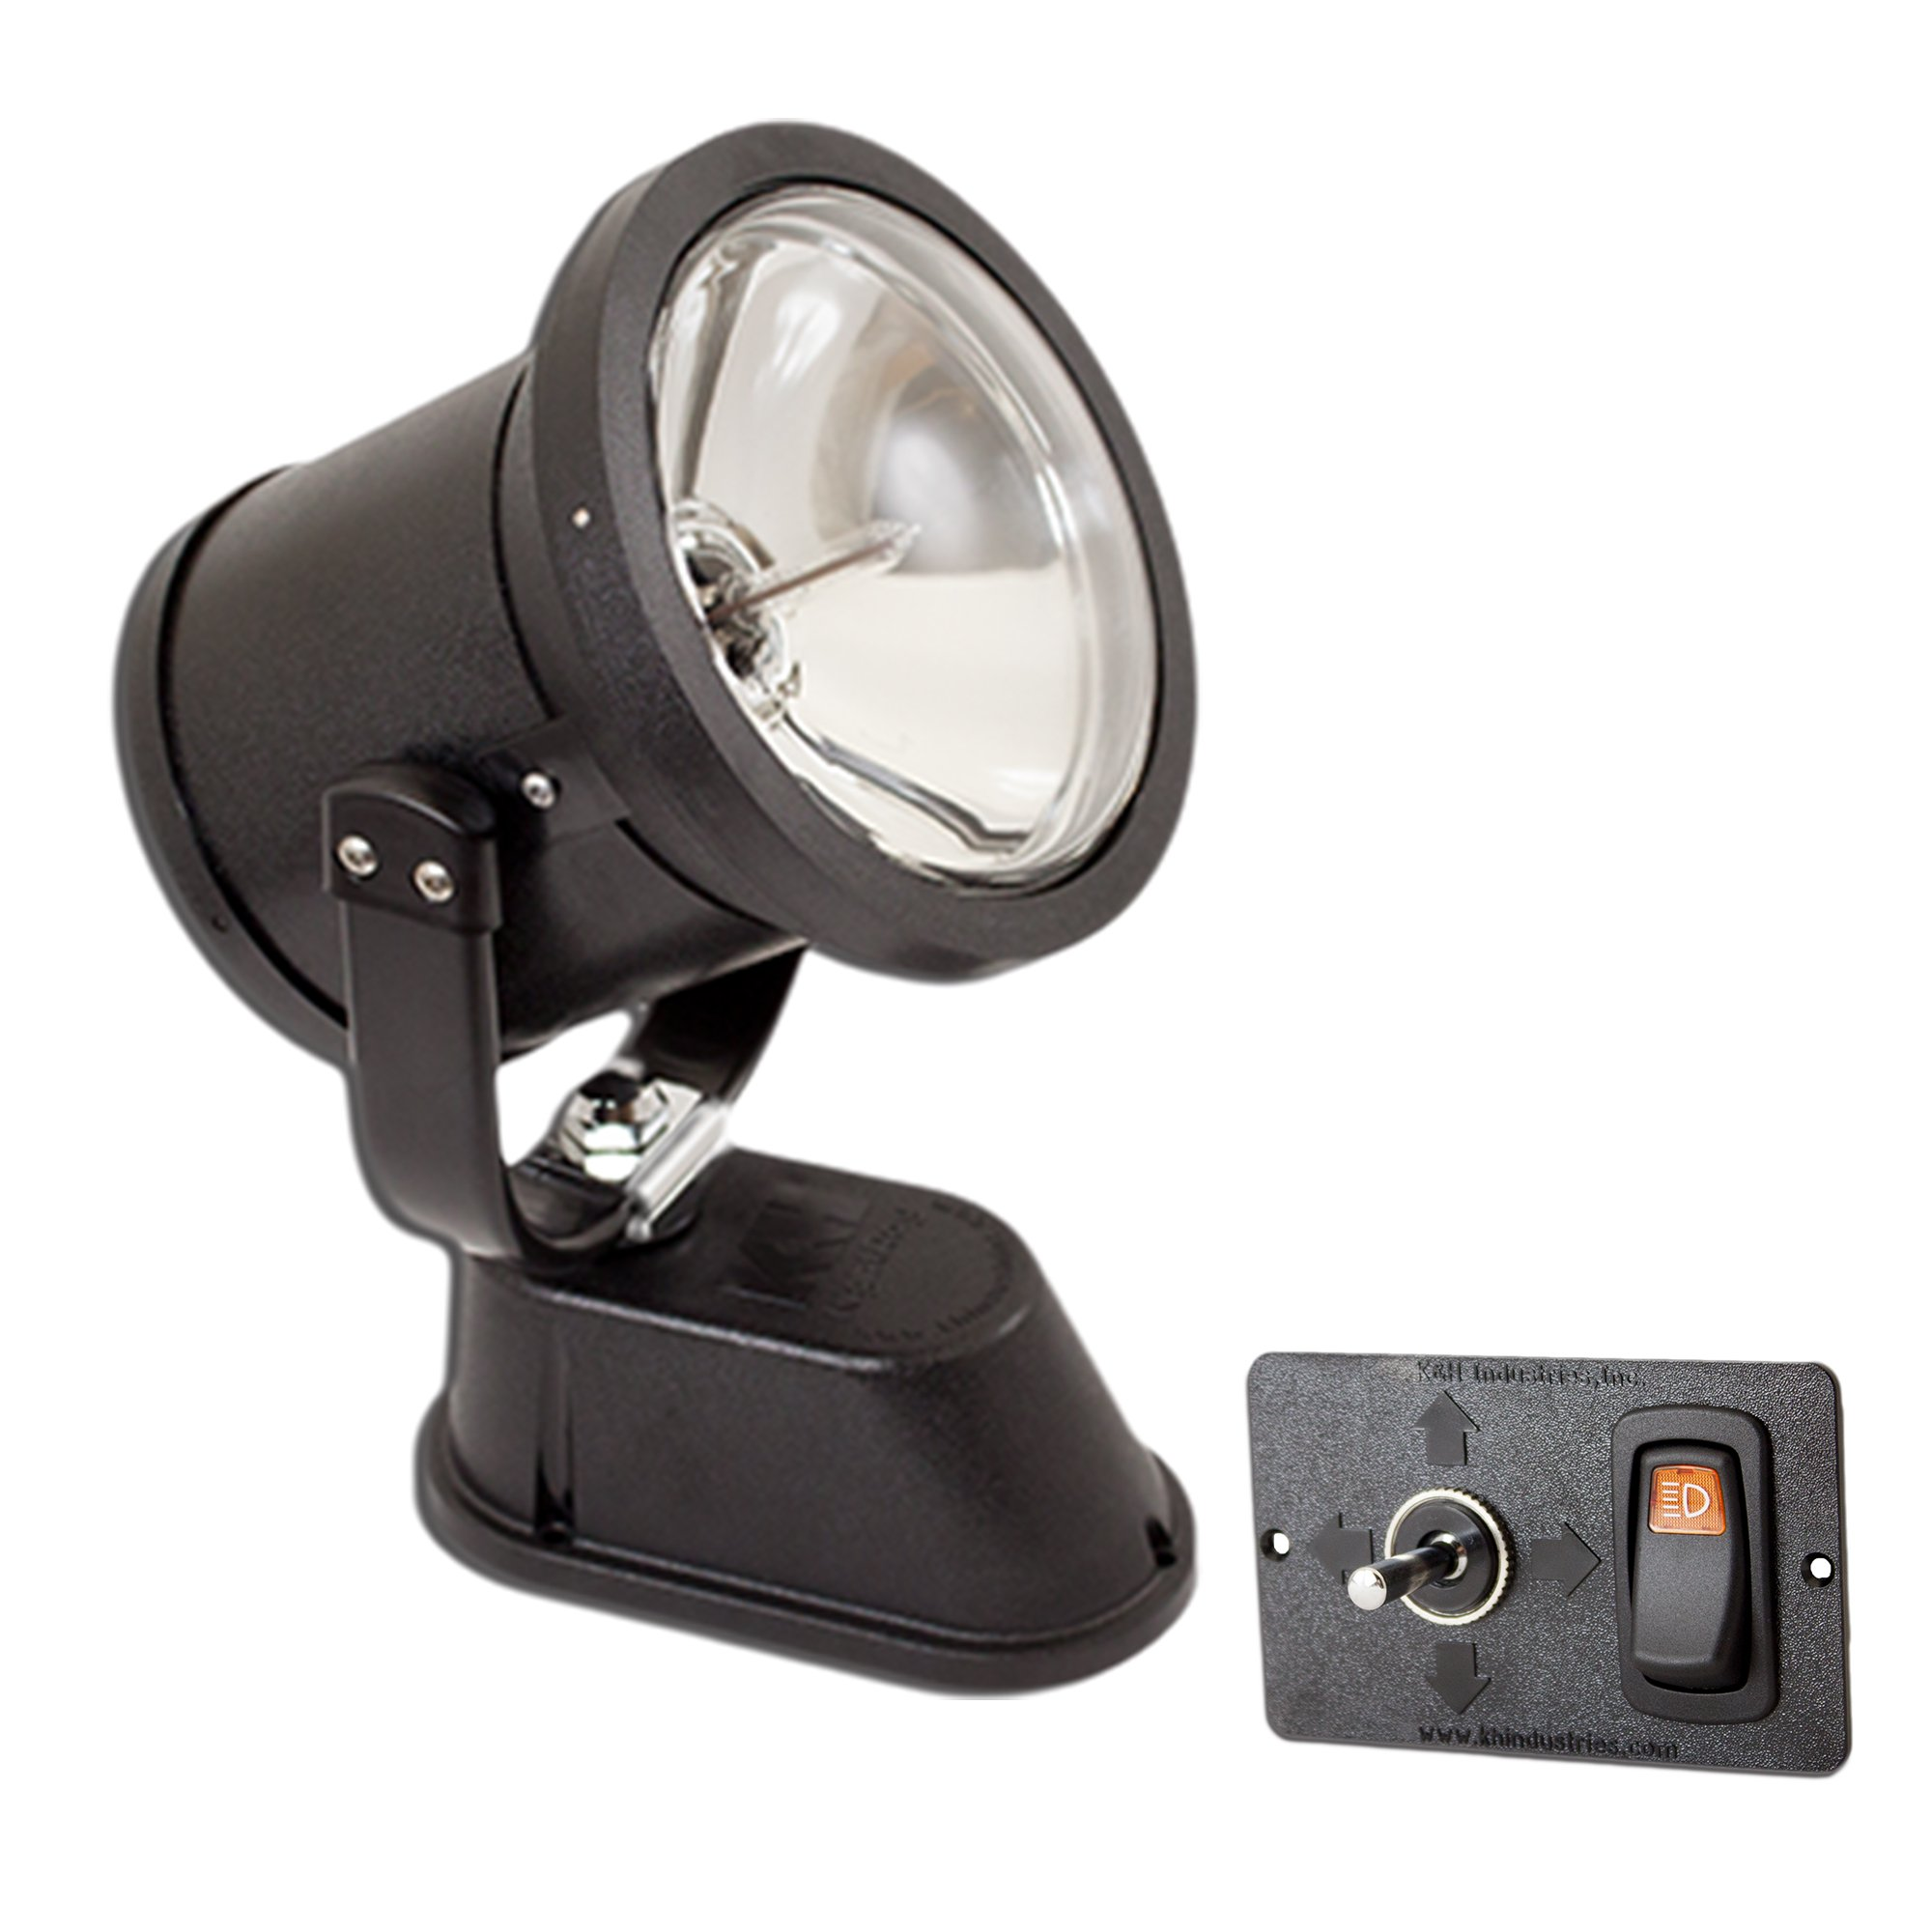 KH Industries NR-955-20 Vehicle Mounted NightRay Spotlight with Hardwired Dash Control Panel, 750000cp Spotlight